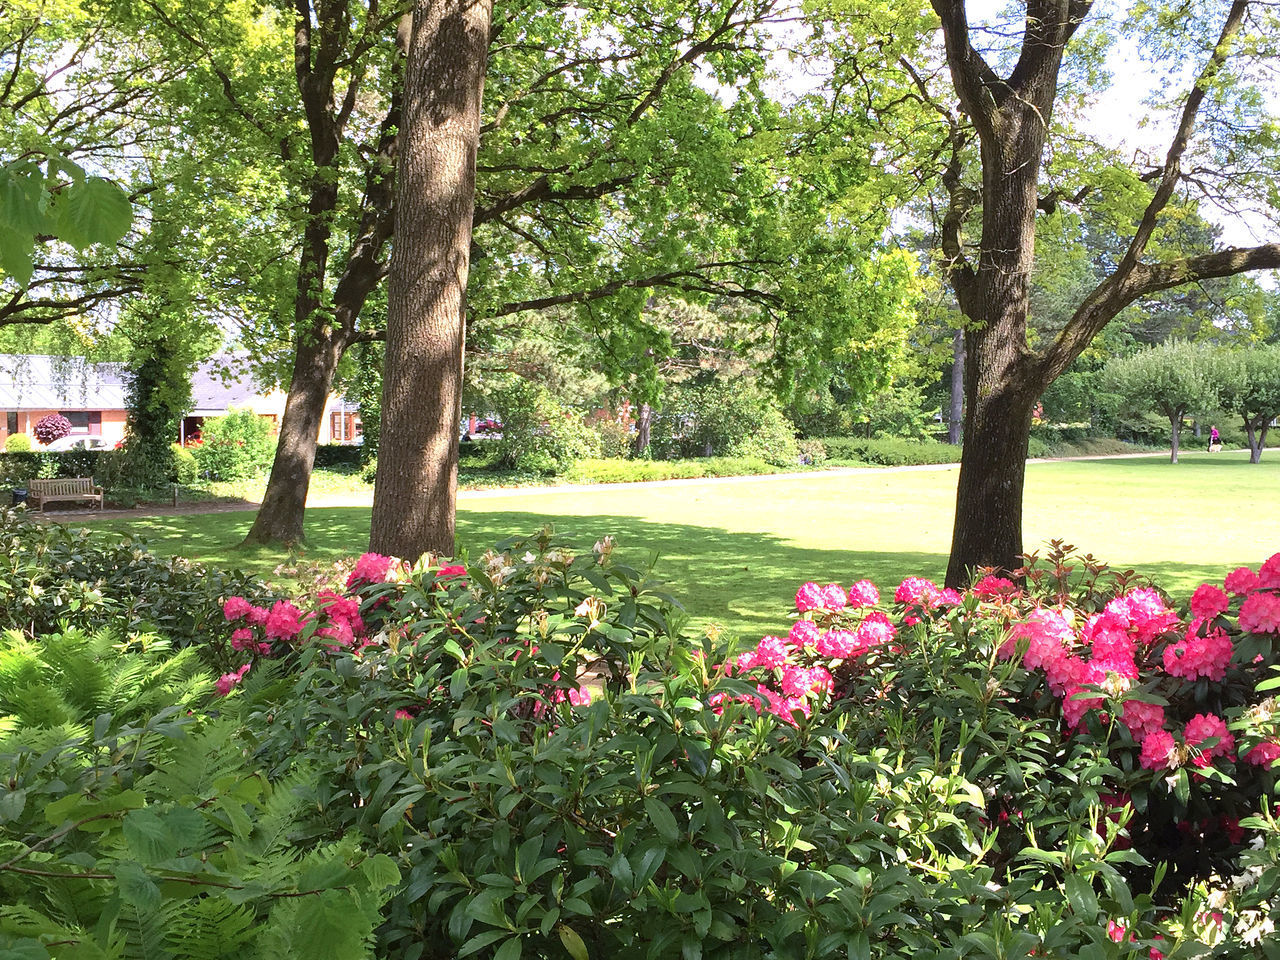 Nature in the city park under summer Beauty In Nature Beauty In Nature Botanical City Colorful Colorfull Day Flor Flower Flowers Fragility Green Color Green Color Growth Image Nature Nature Outdoors Park Park - Man Made Space Stockholm Tranquility Tree Tree Trunk Trees